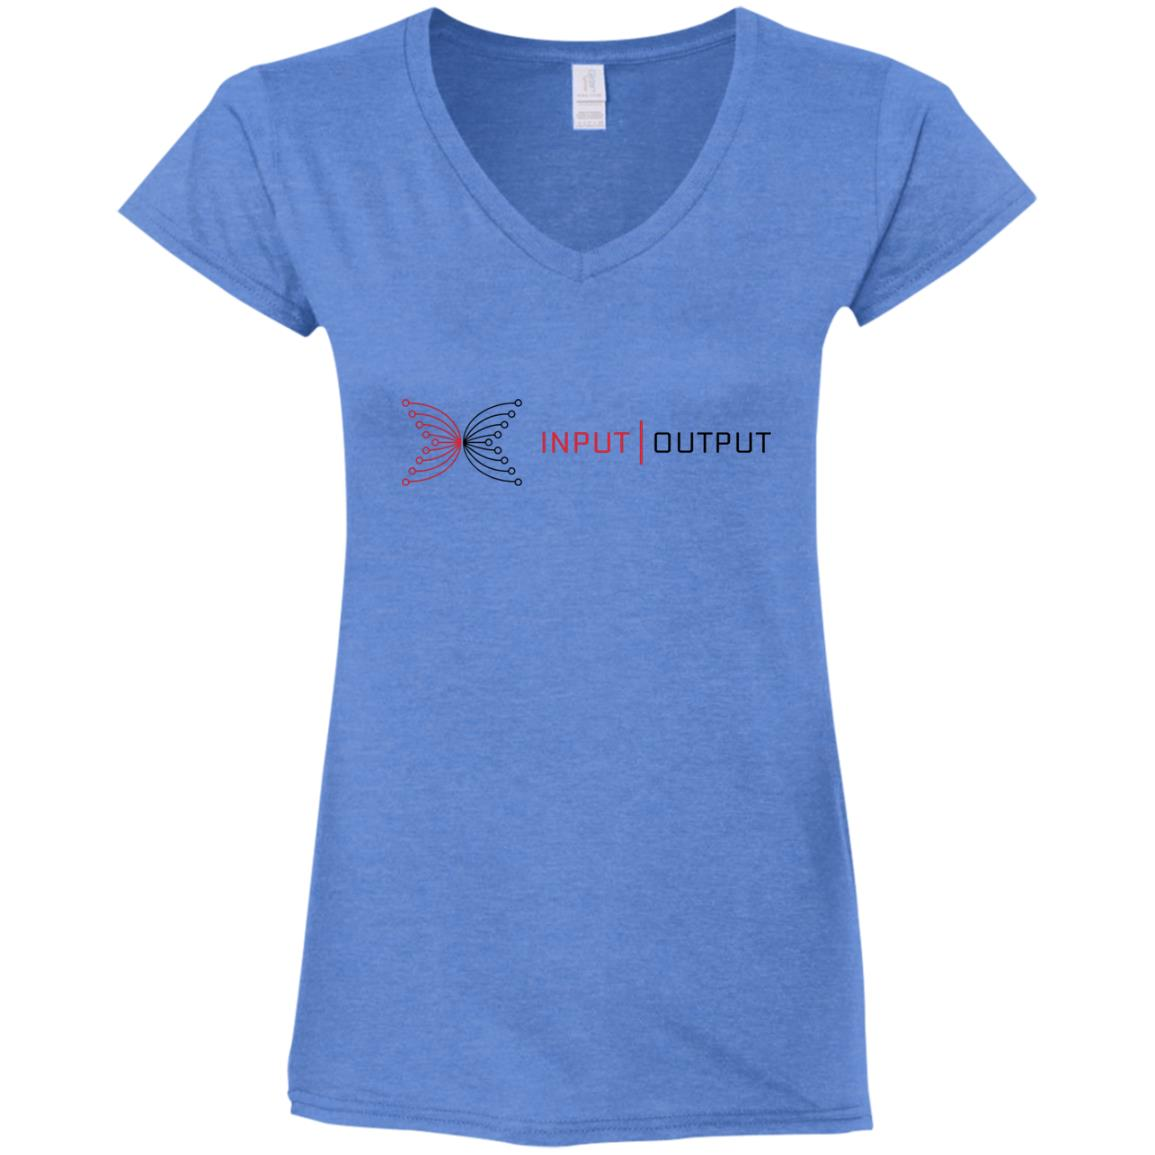 IOG Ladies' Fitted Softstyle 4.5 oz V-Neck T-Shirt